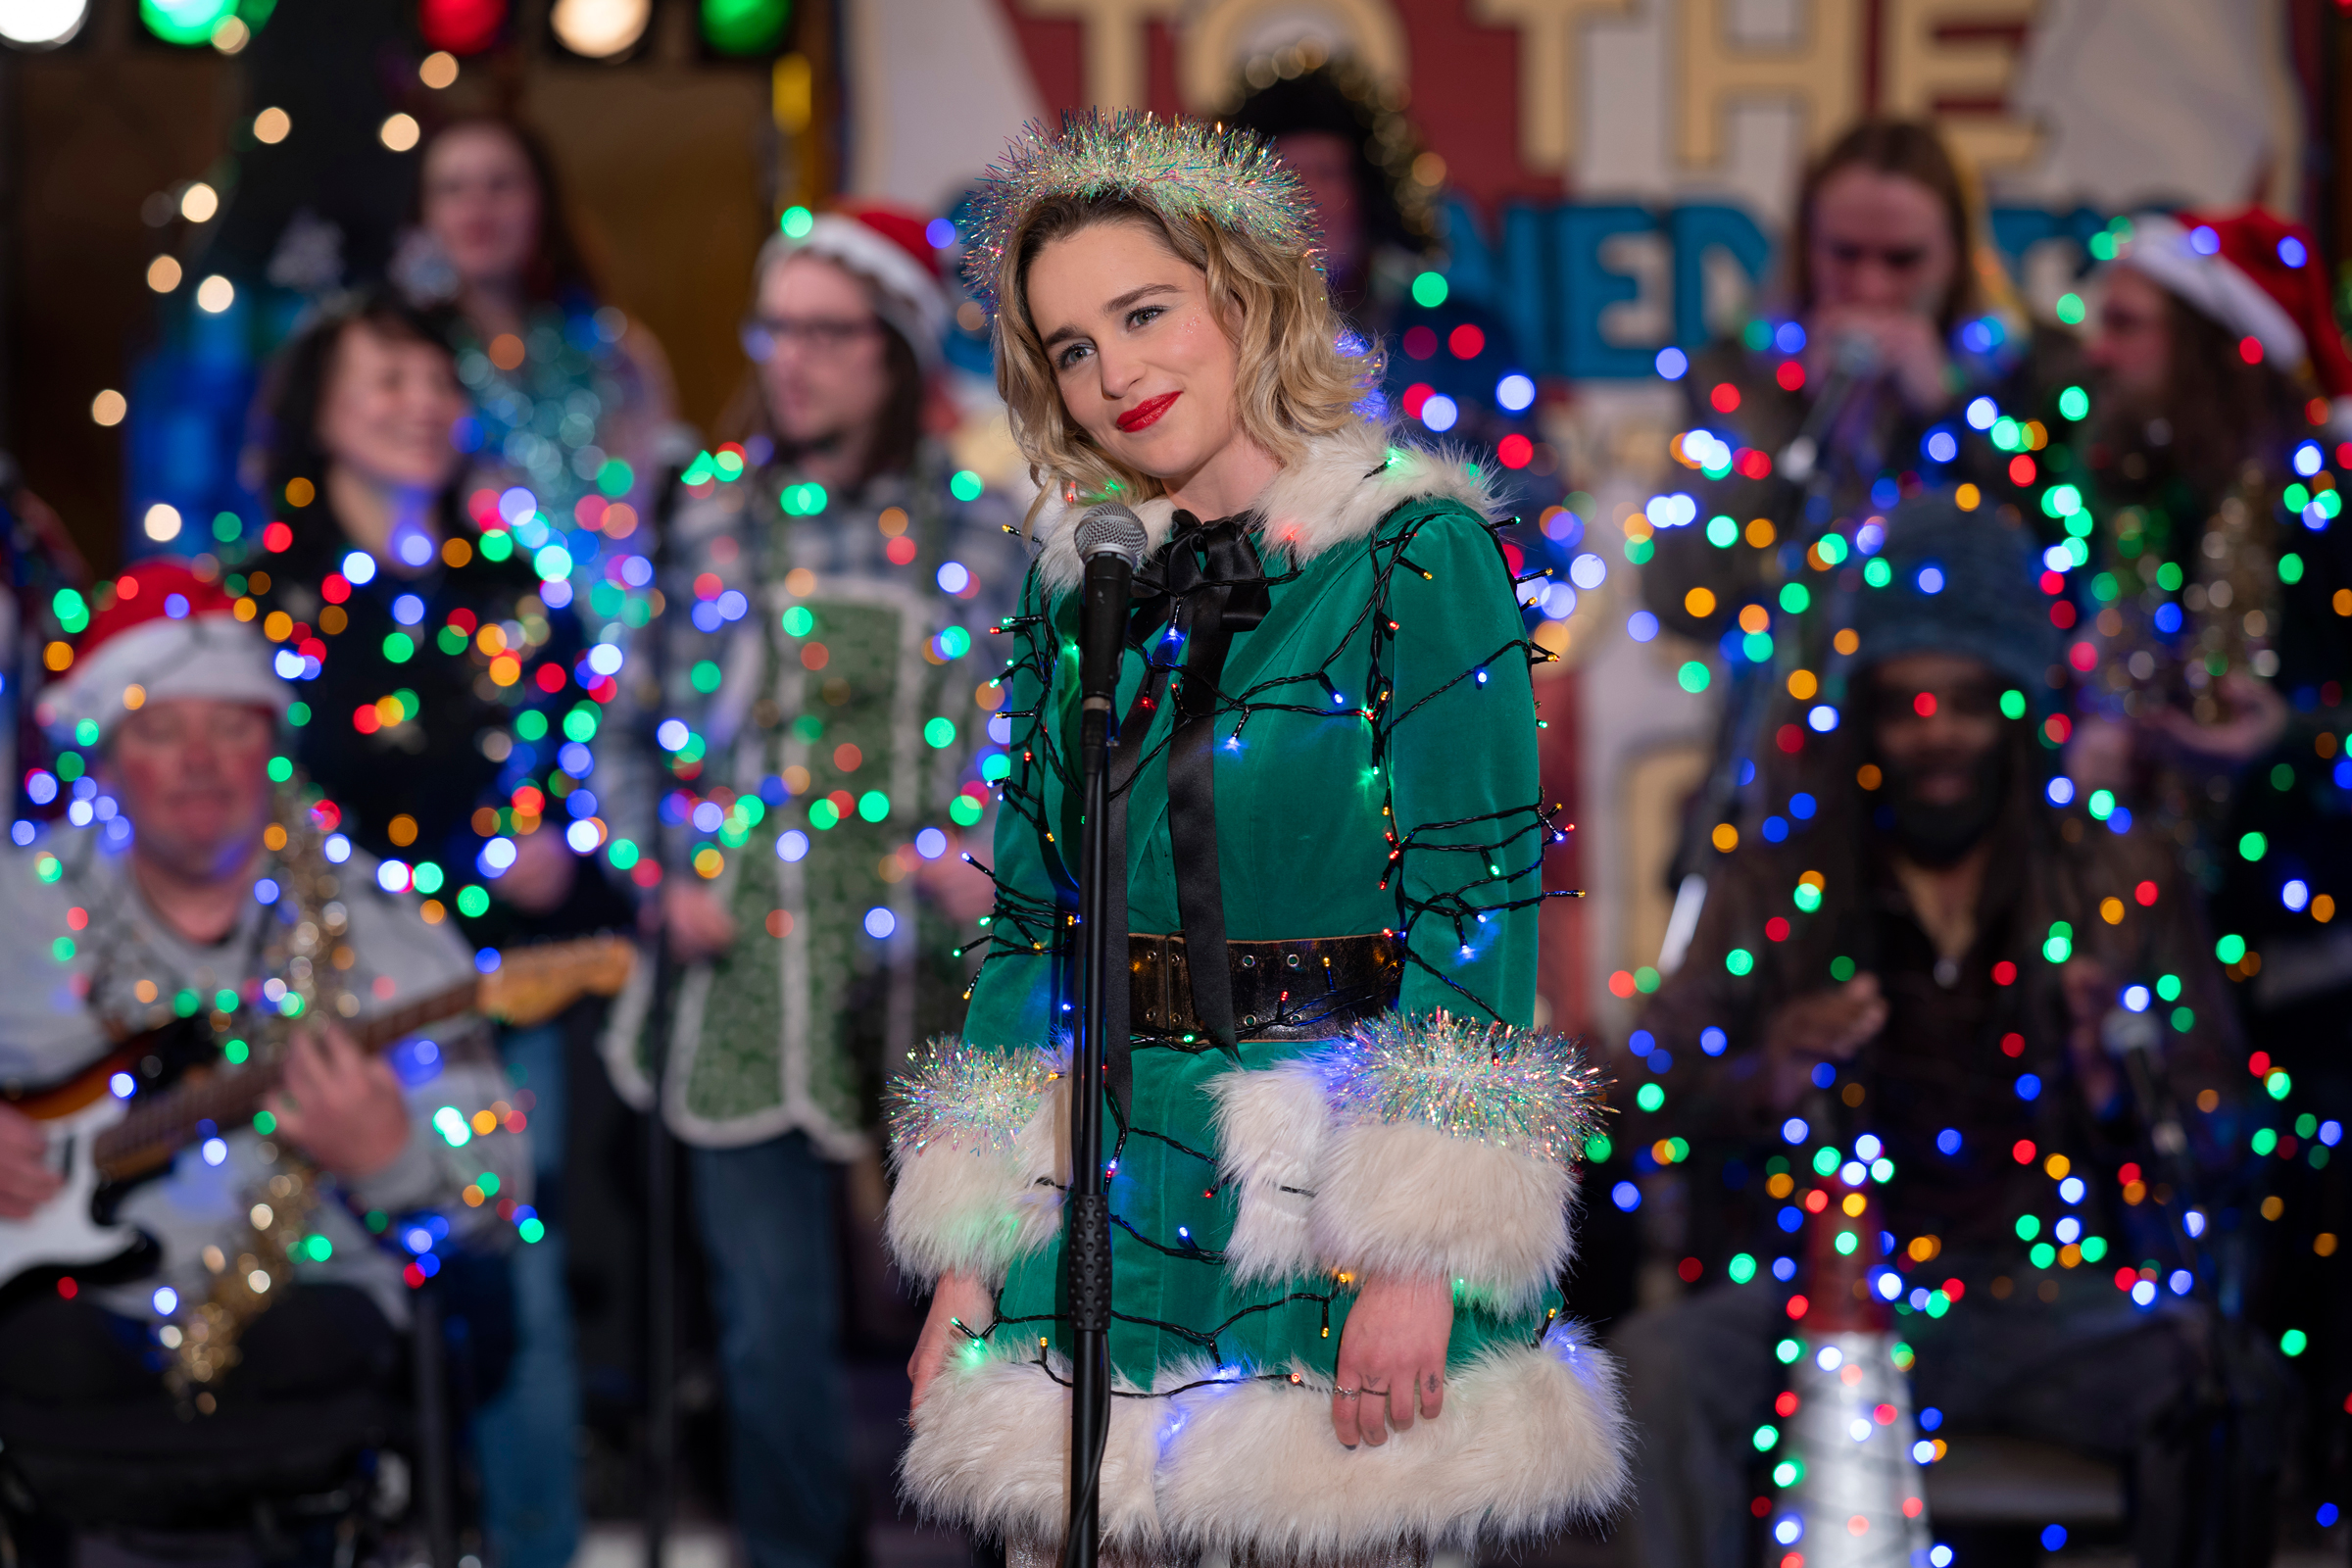 Last Christmas' Movie Review: When Holiday Movies Go Very